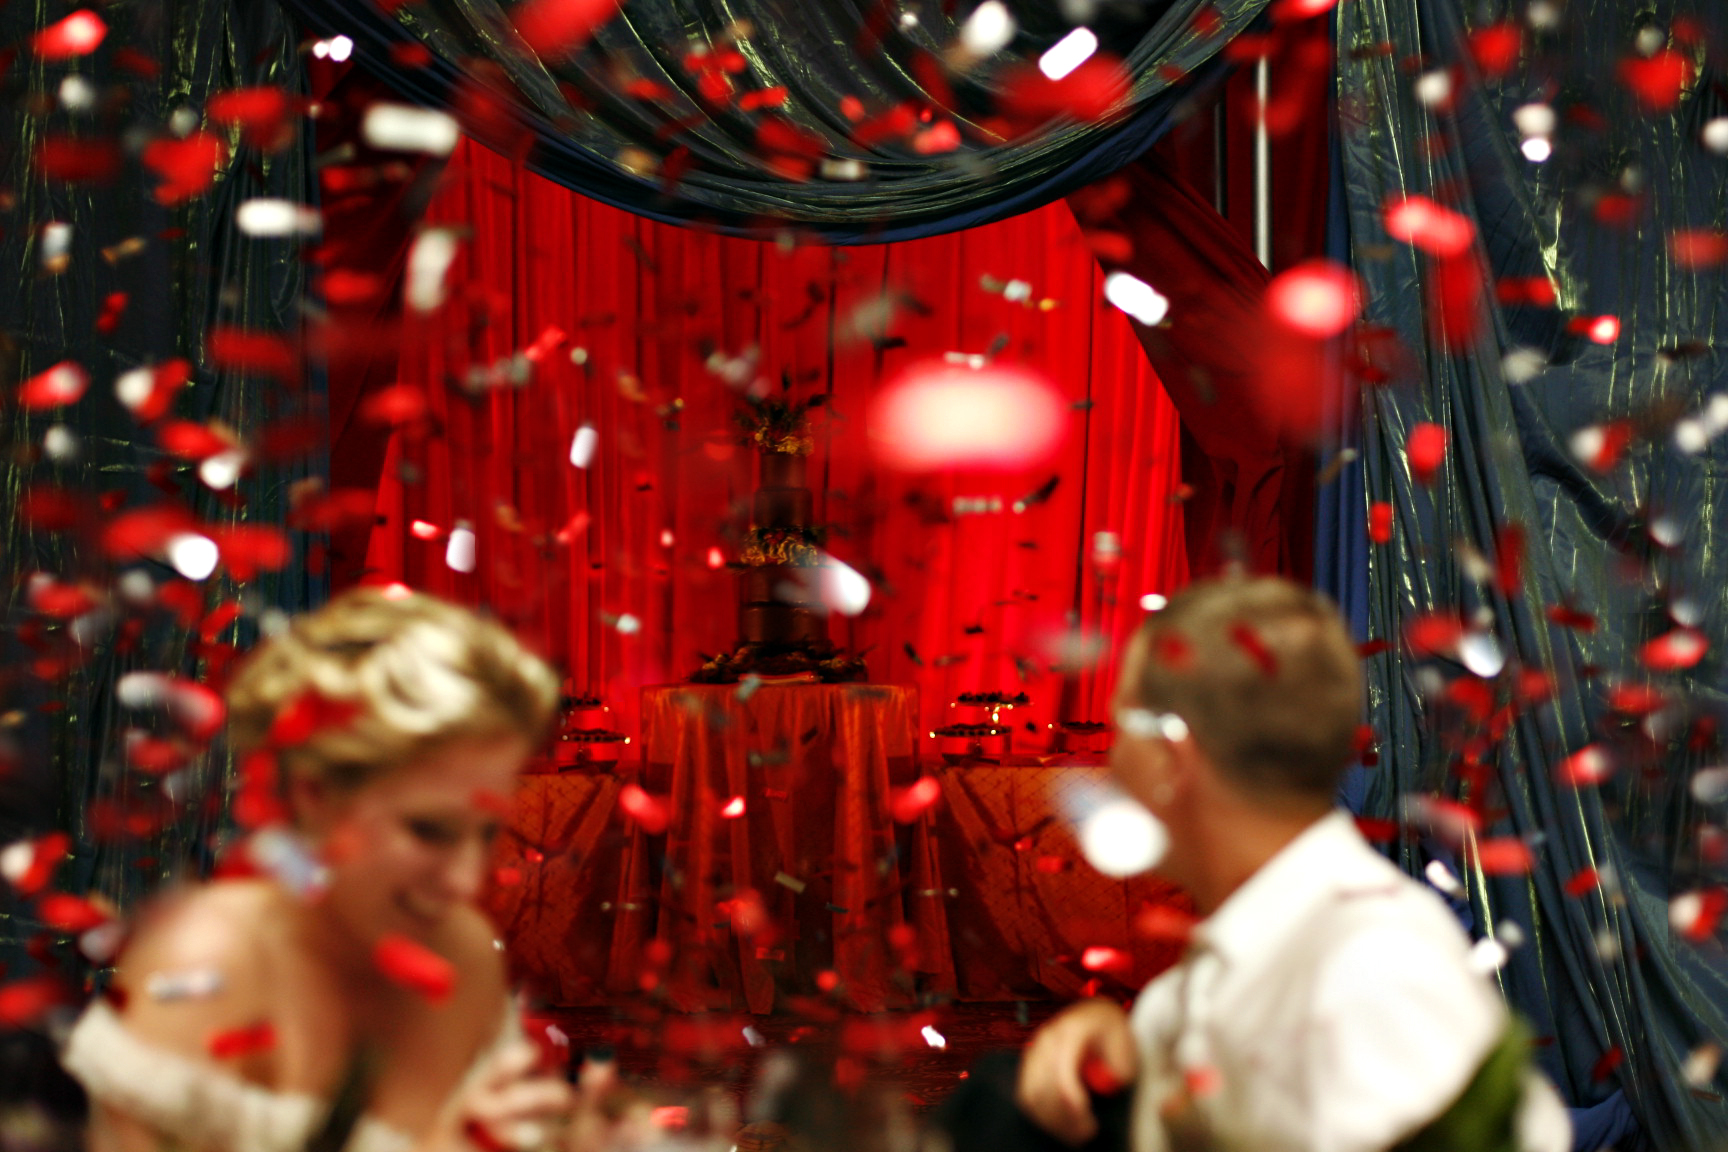 wedding with red confetti falling over dance floor